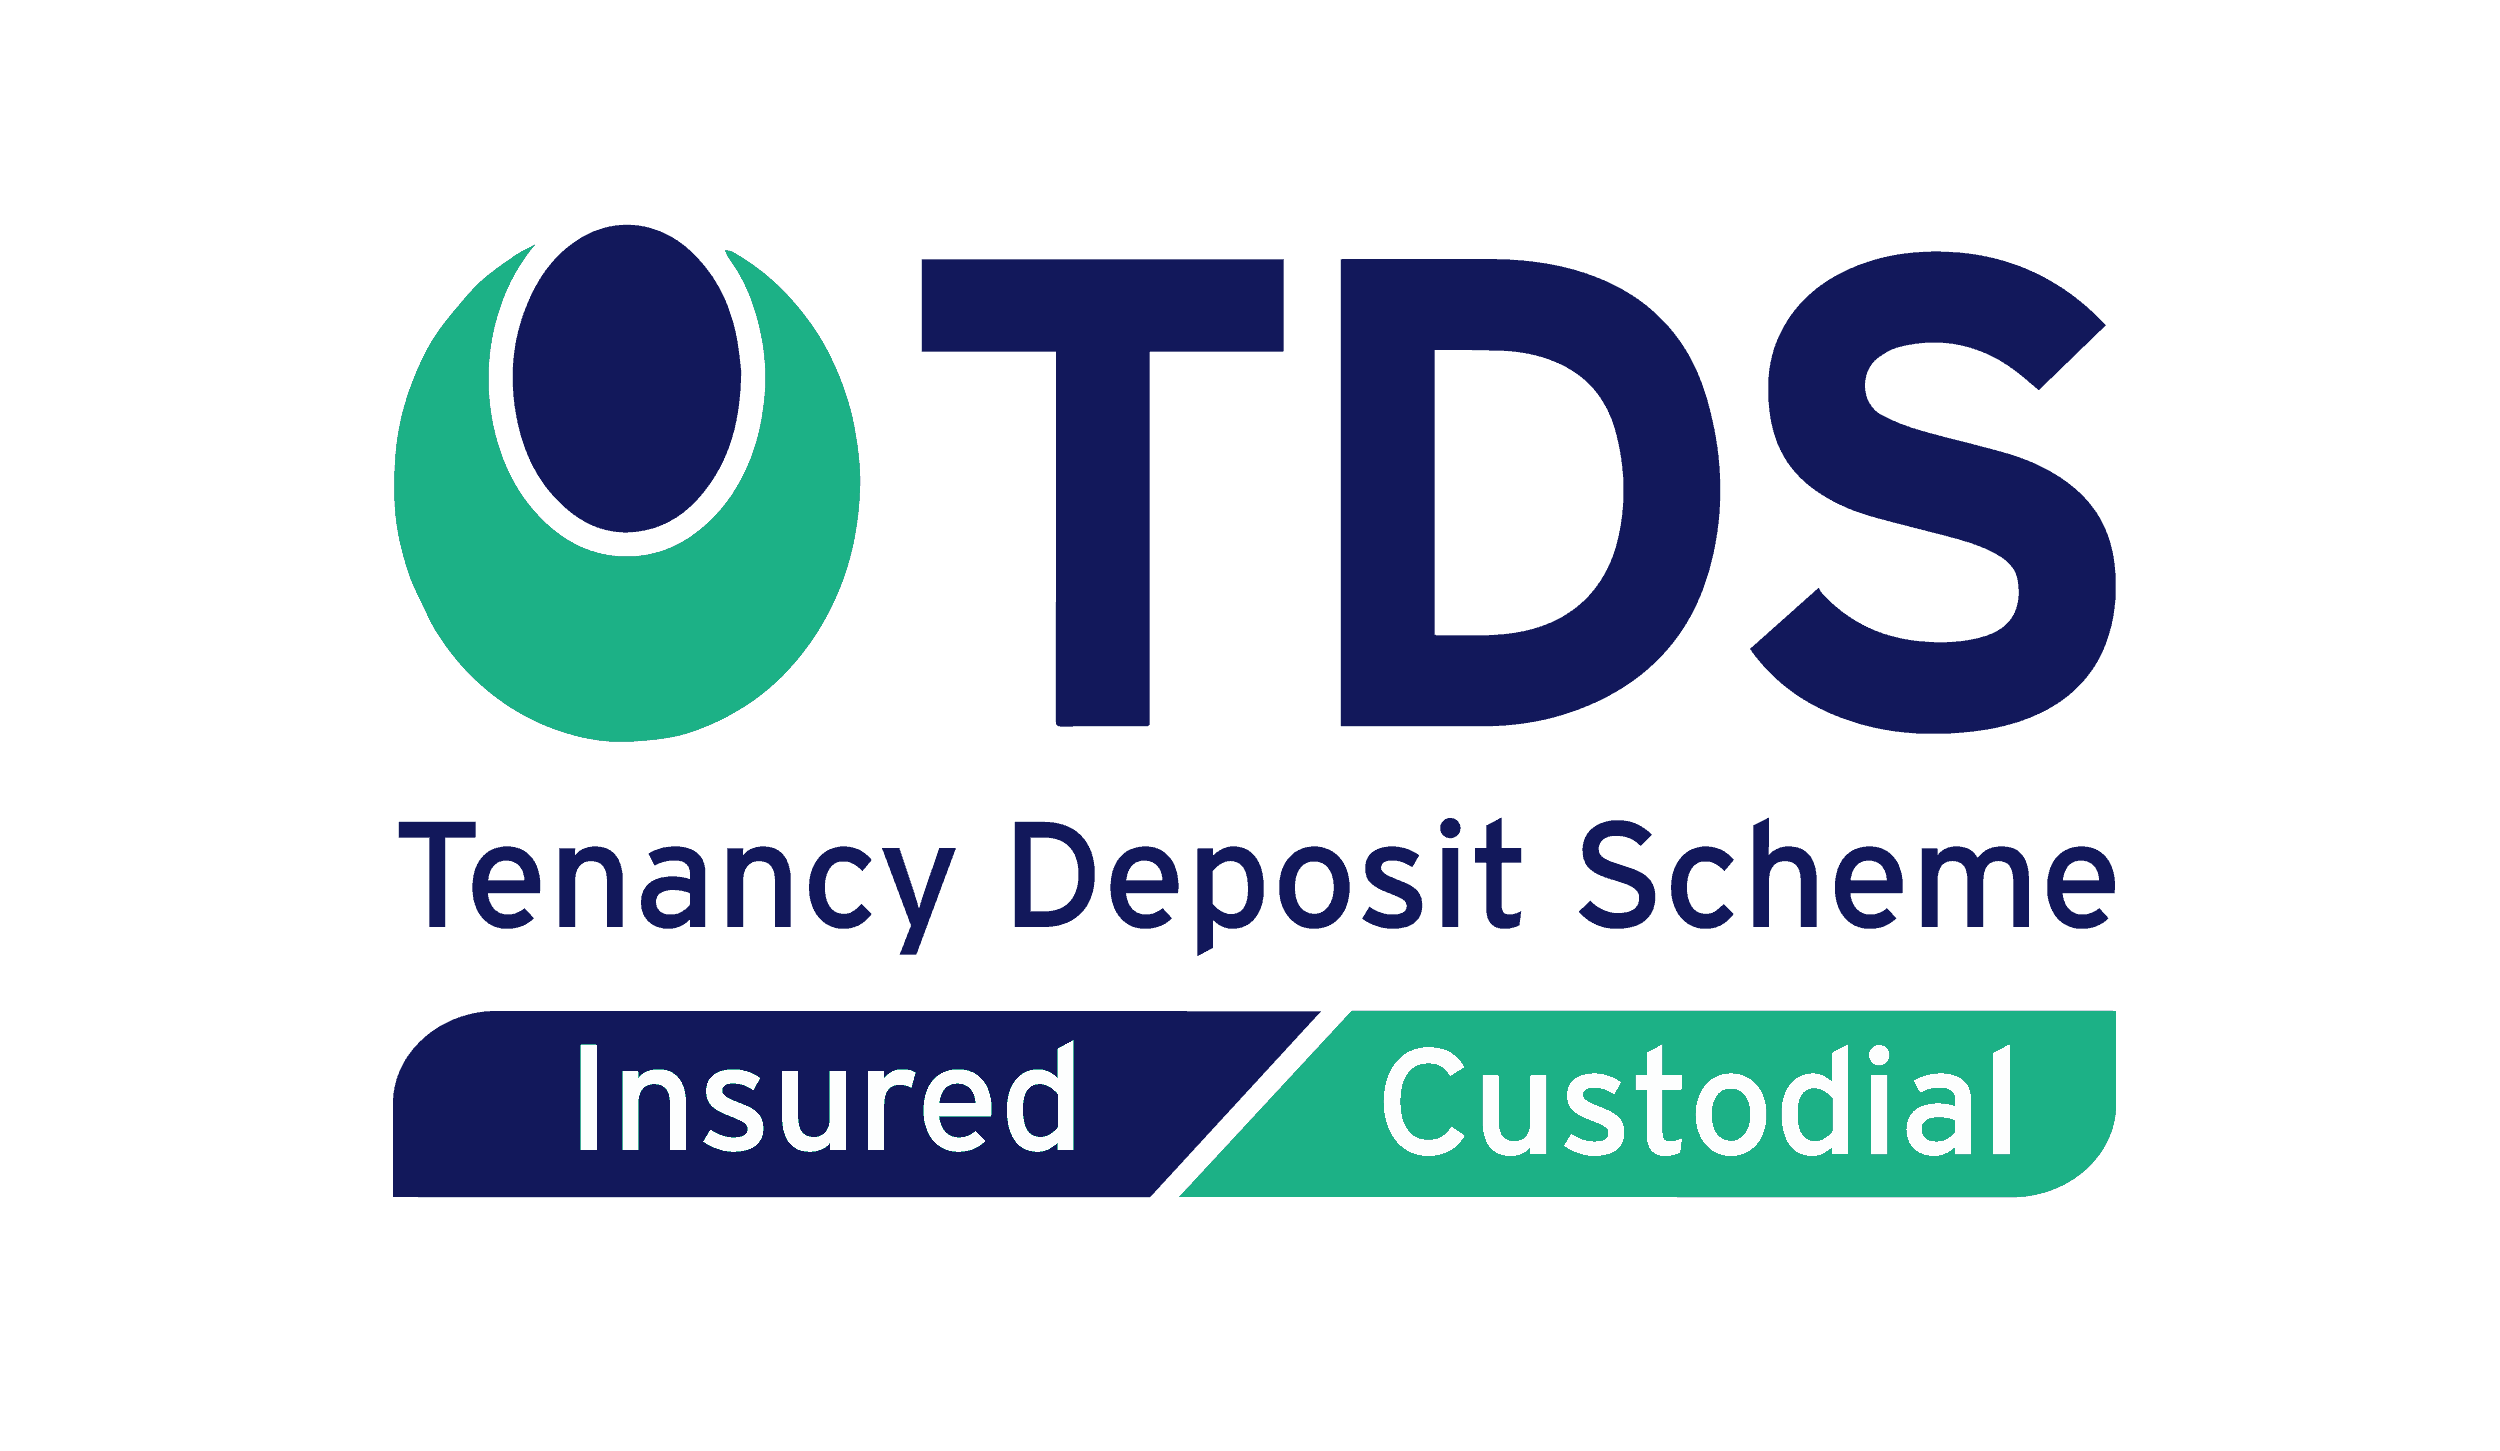 TDS Combined Logo_RGB (002)